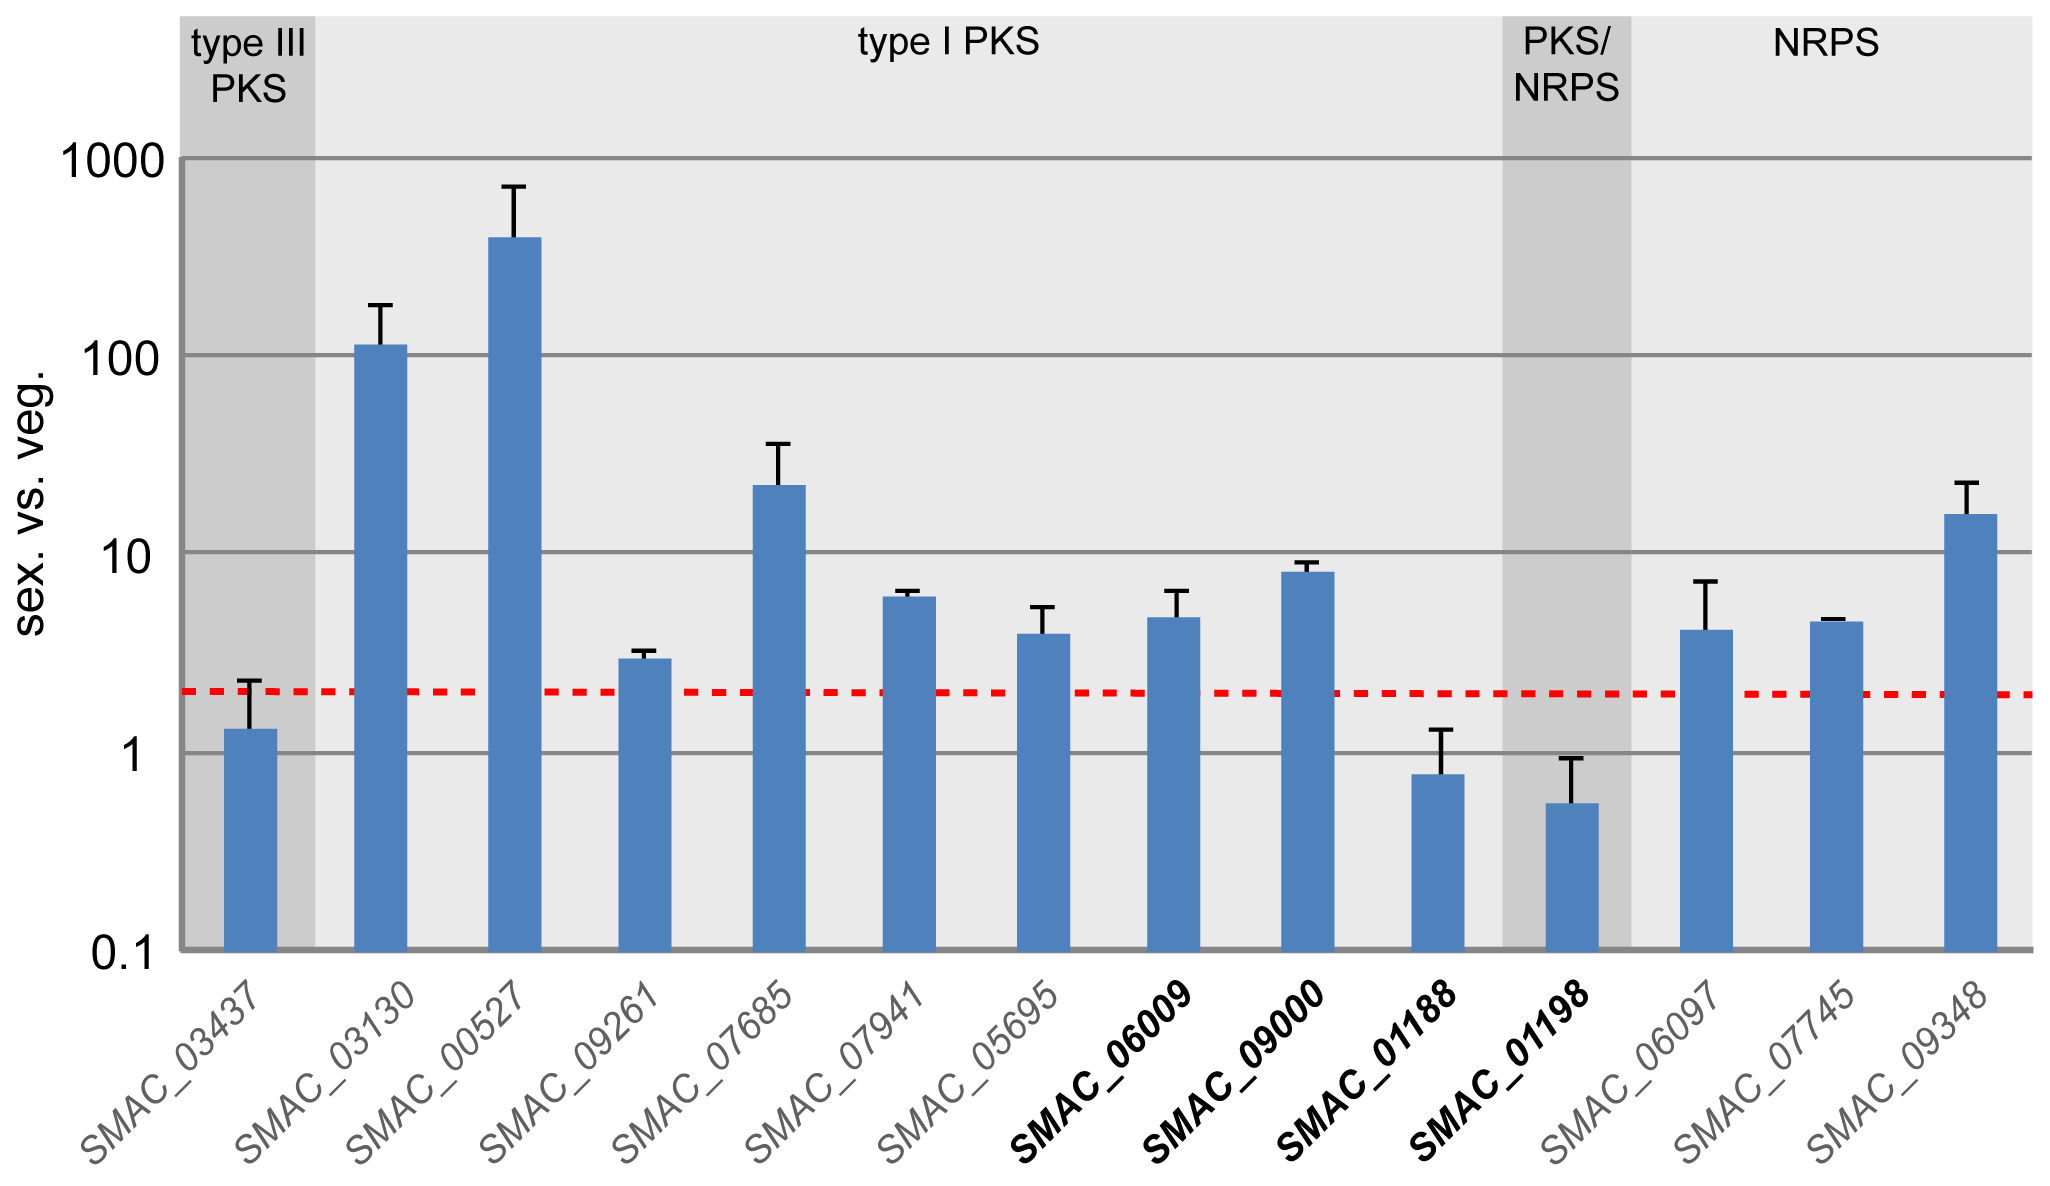 Expression of all predicted <i>pks</i> and <i>nrps</i> genes in <i>S. macrospora</i> during sexual development compared with vegetative growth.